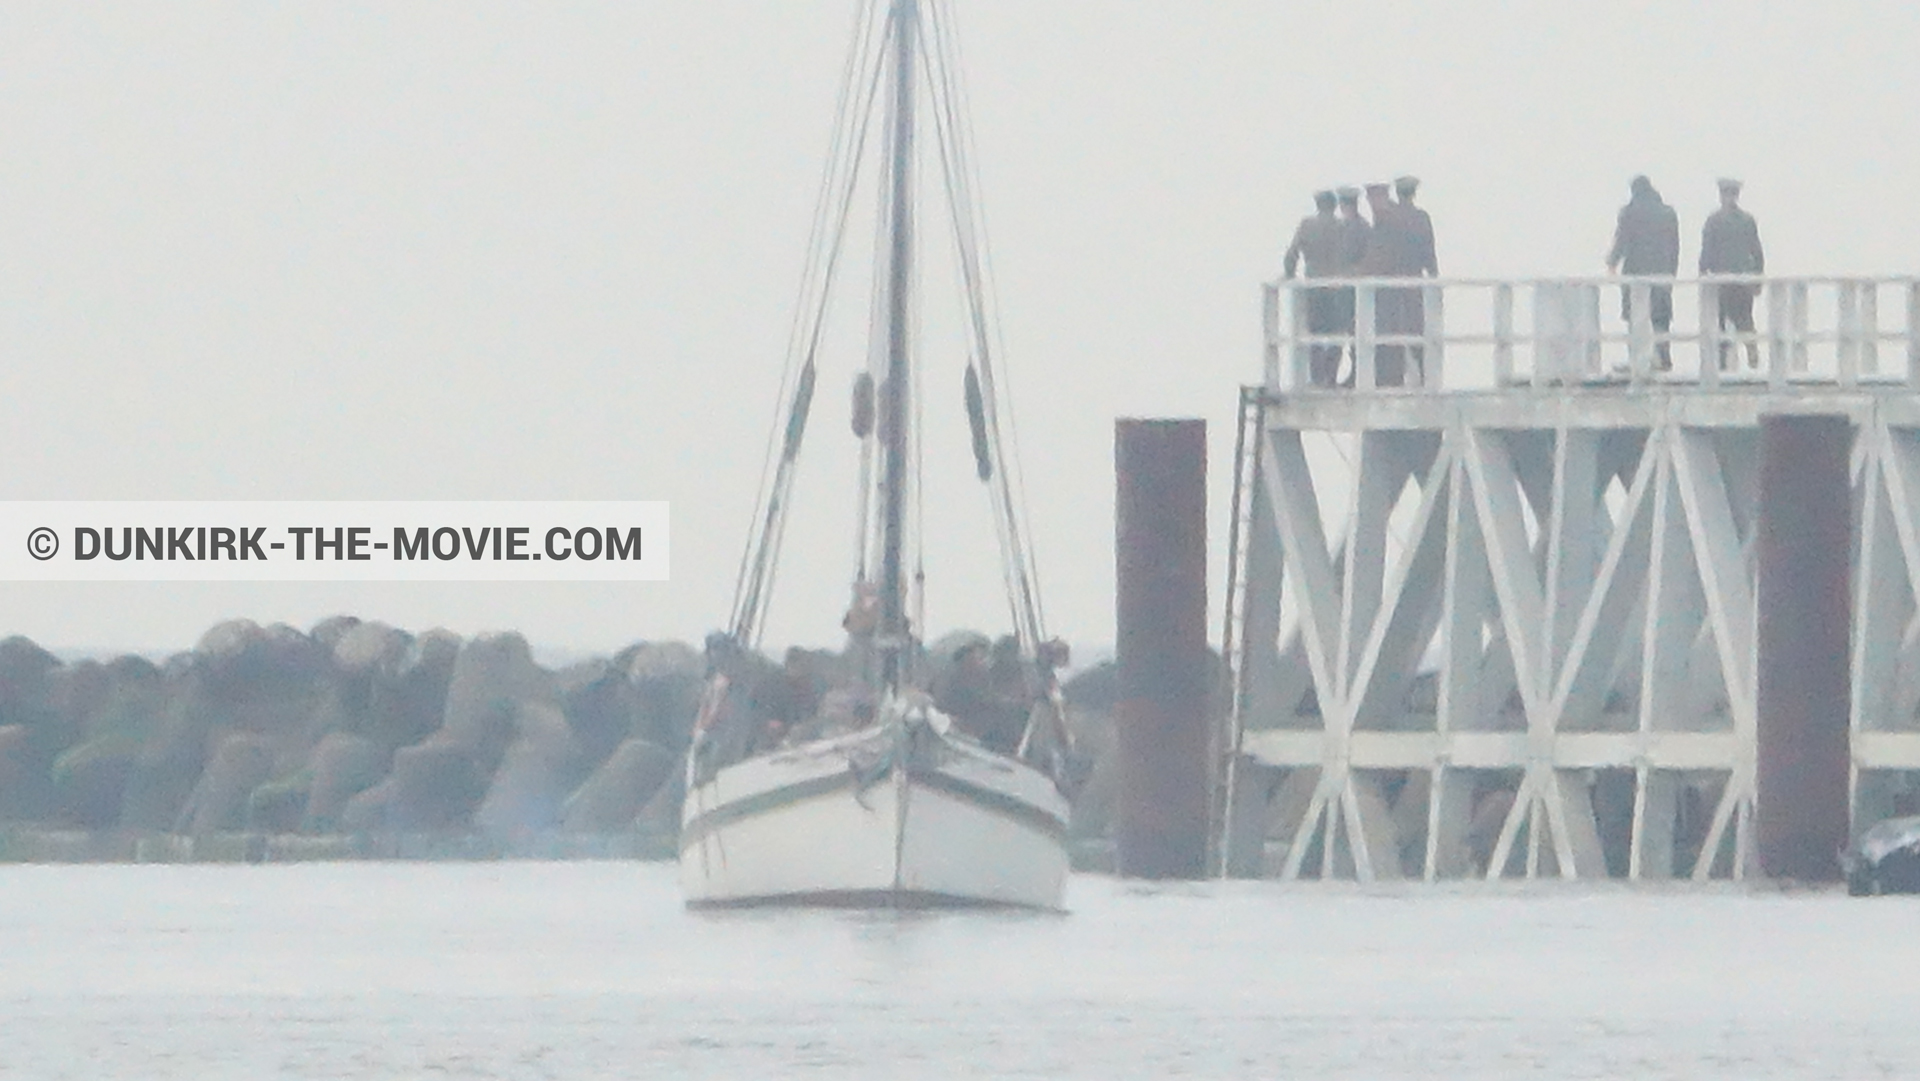 Picture with actor, grey sky, EST pier, boat,  from behind the scene of the Dunkirk movie by Nolan